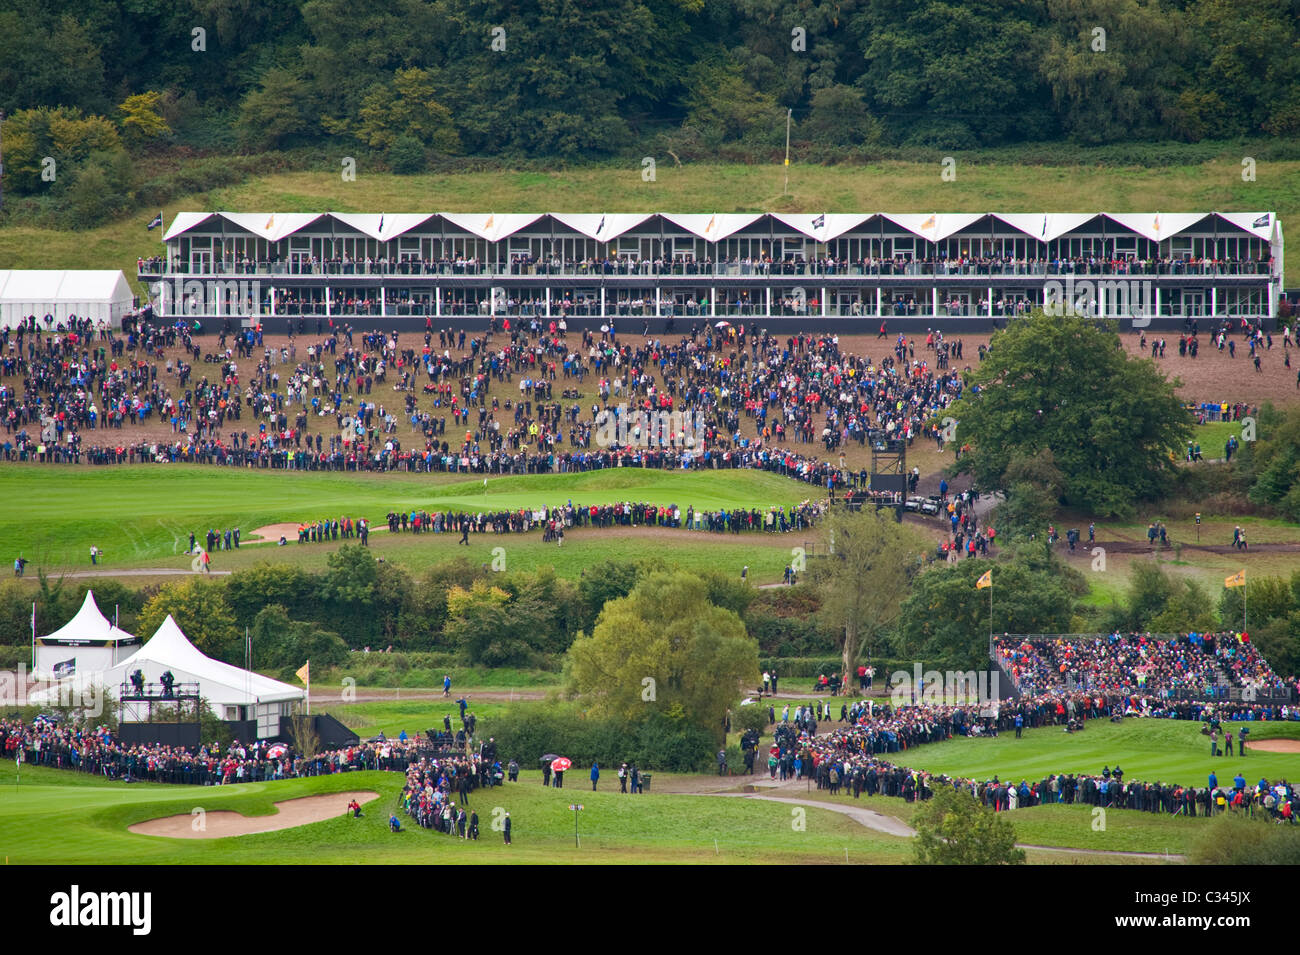 2010-ryder-cup-at-the-celtic-manor-resort-view-over-the-course-newport-C345JX.jpg